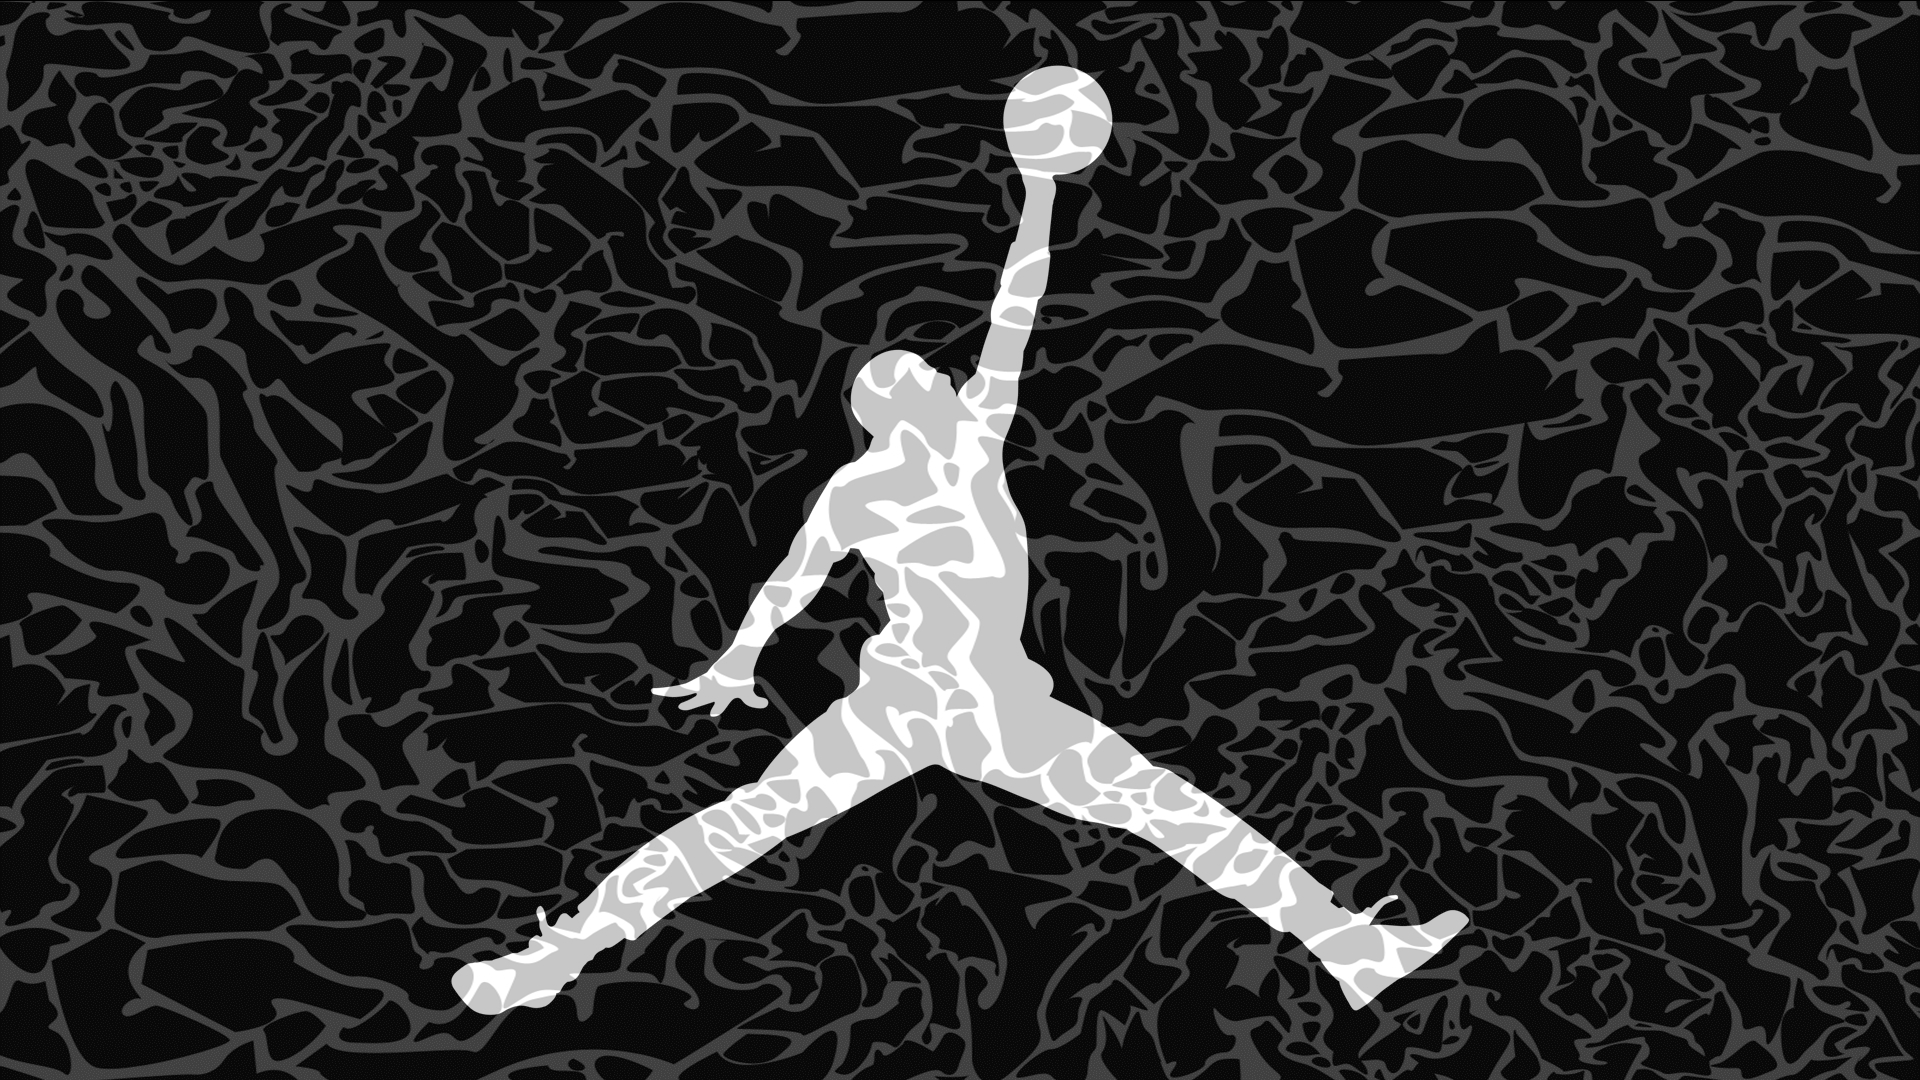 Air Jordan Logo wallpaper - 949677